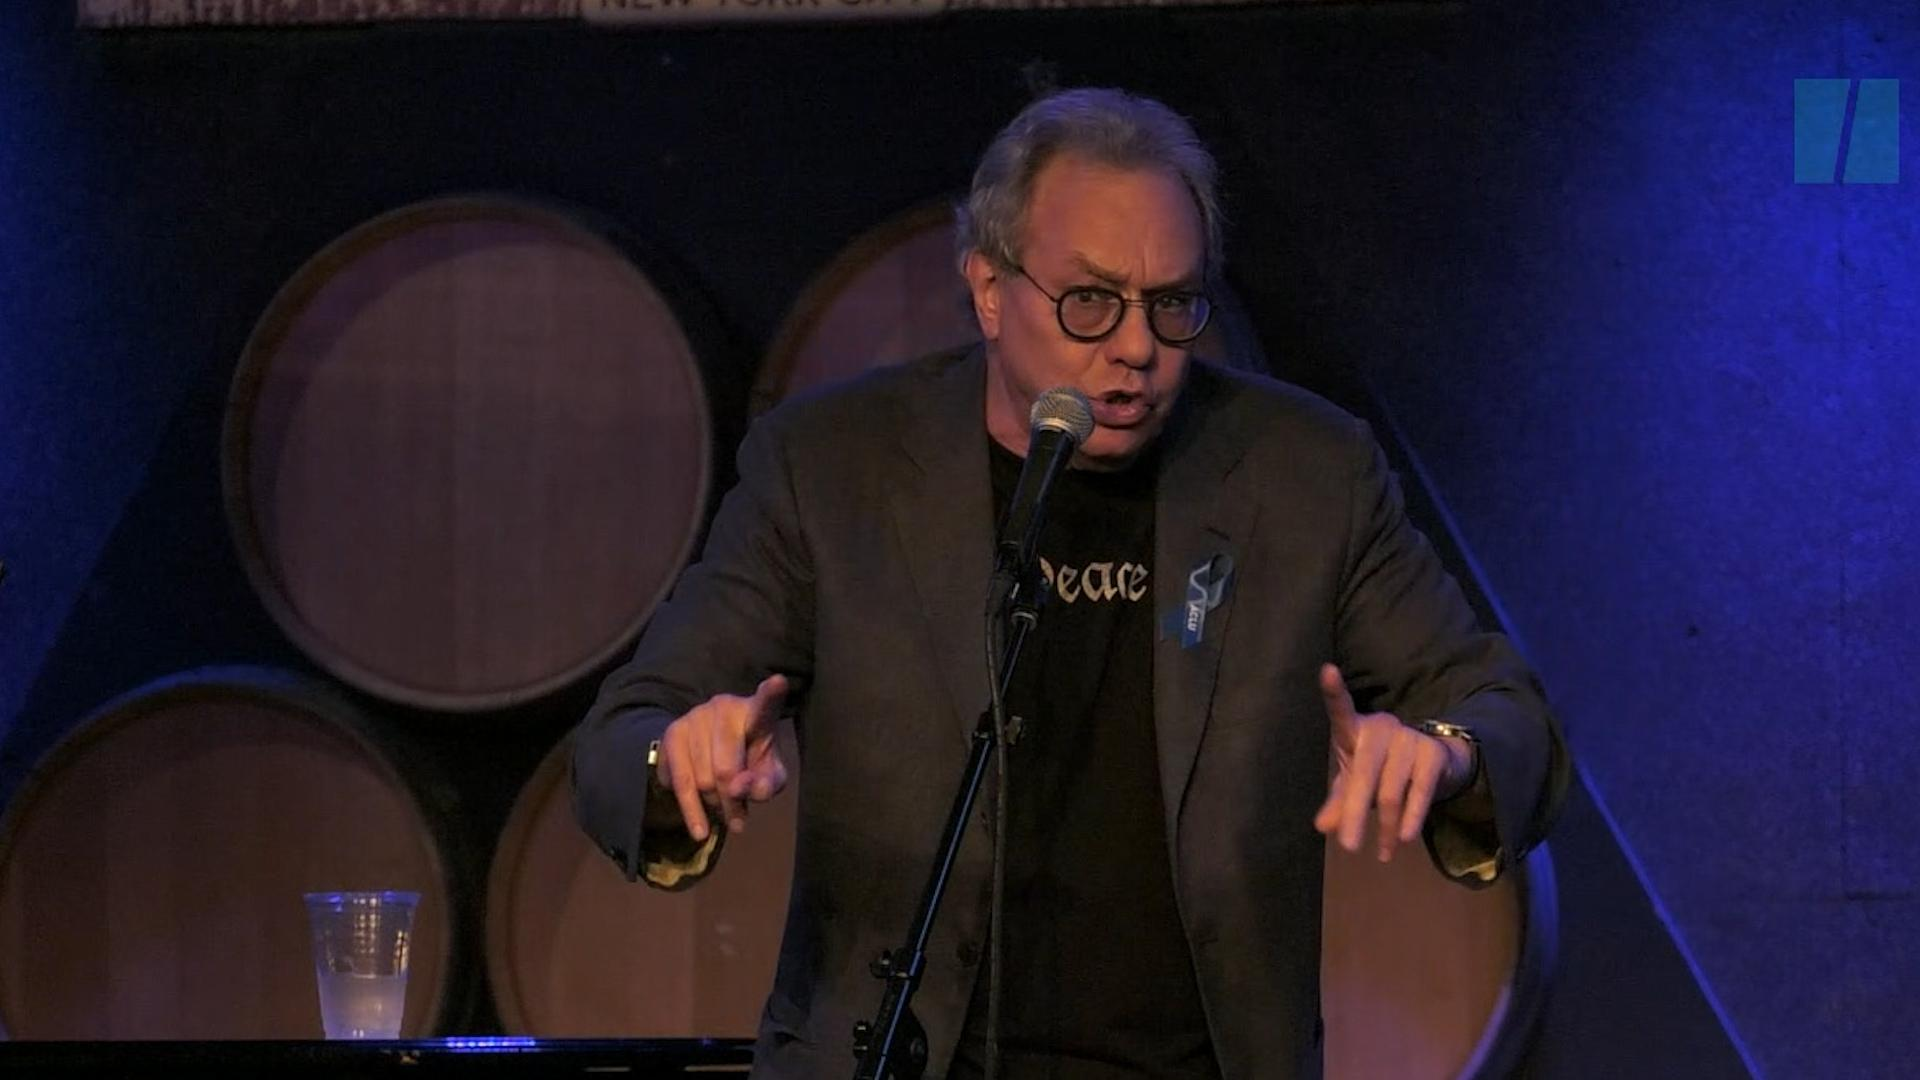 Here's What Makes Angry Comedian Lewis Black Most Angry About Trump